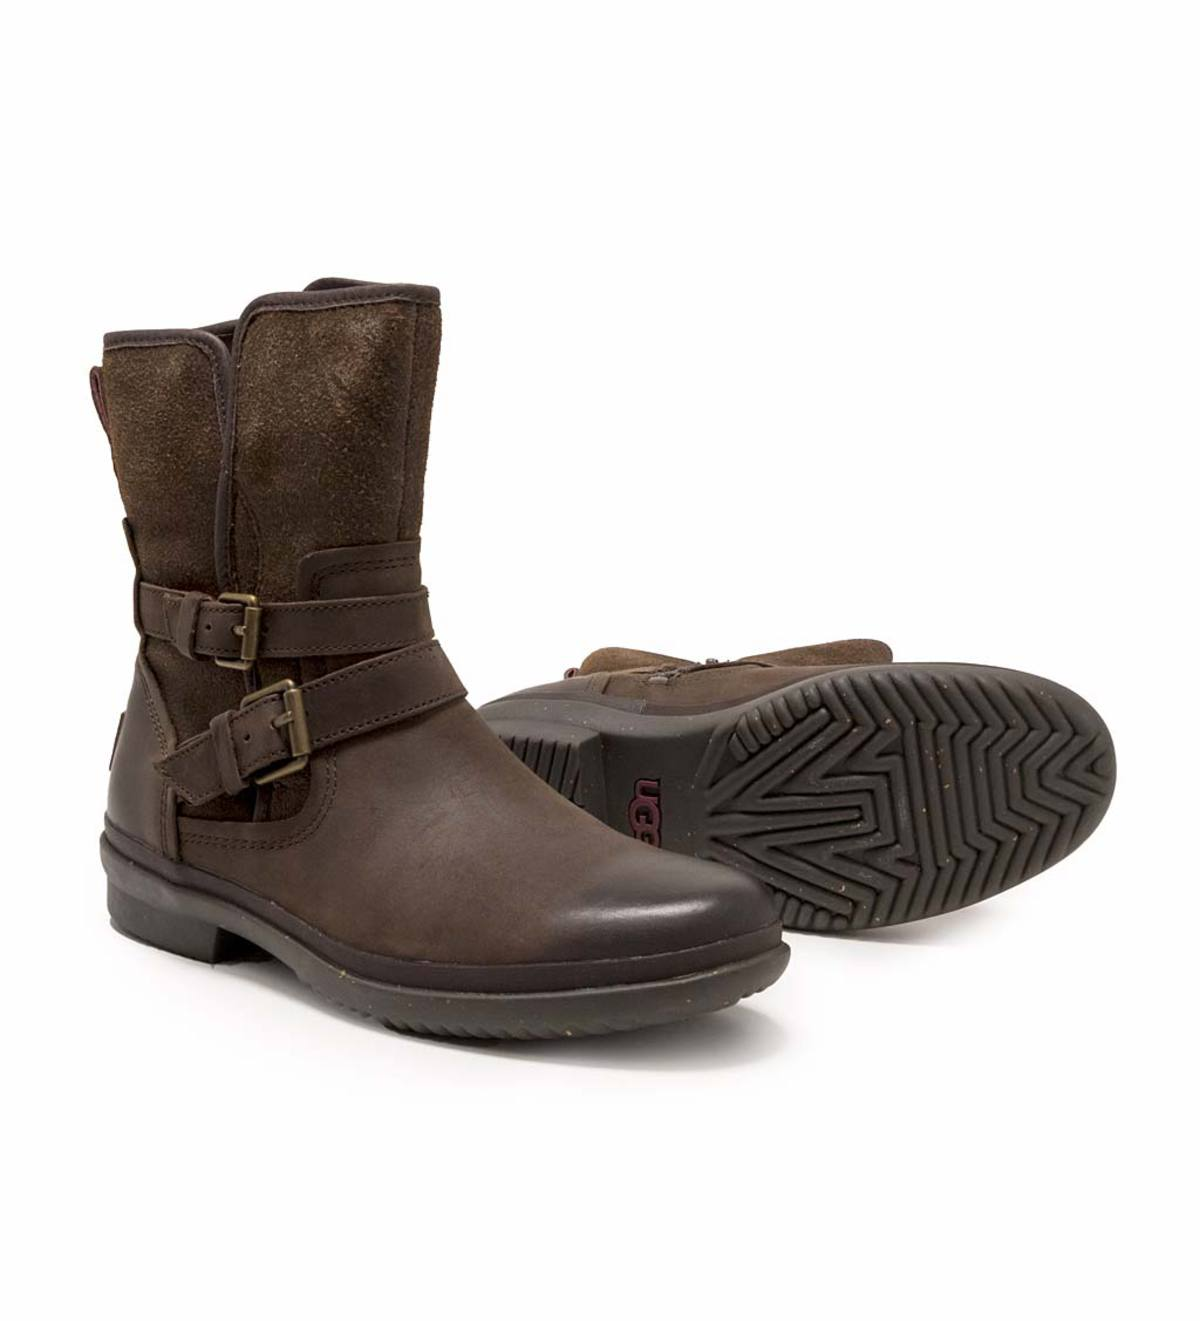 UGG Simmens Boot - Stout - Size 9